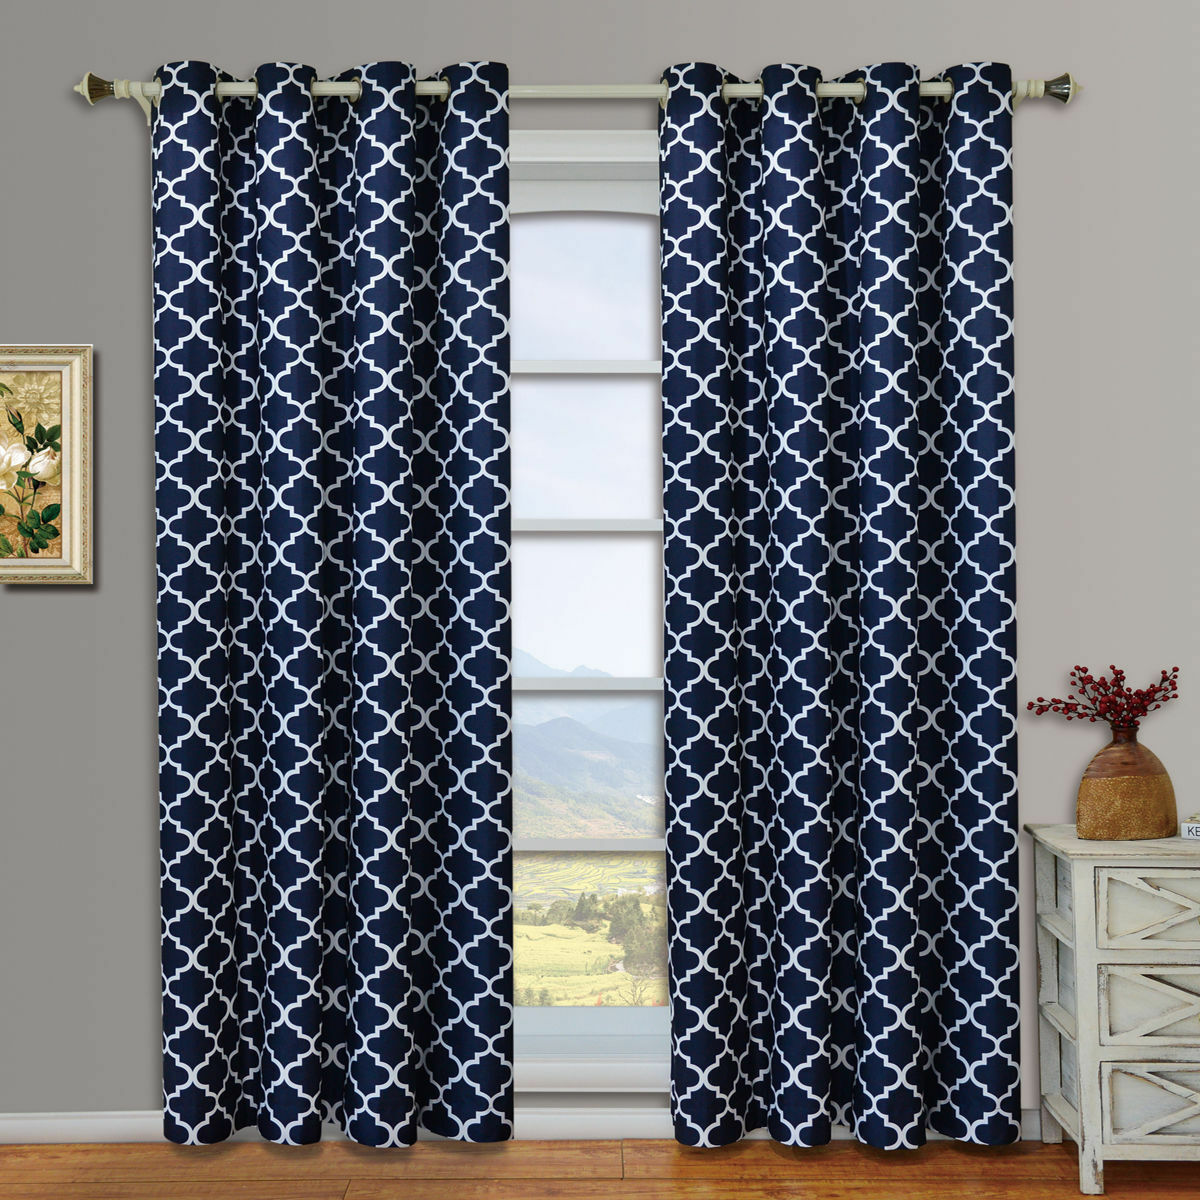 Insulated curtains - Meridian Blackout Thermal Insulated Curtains